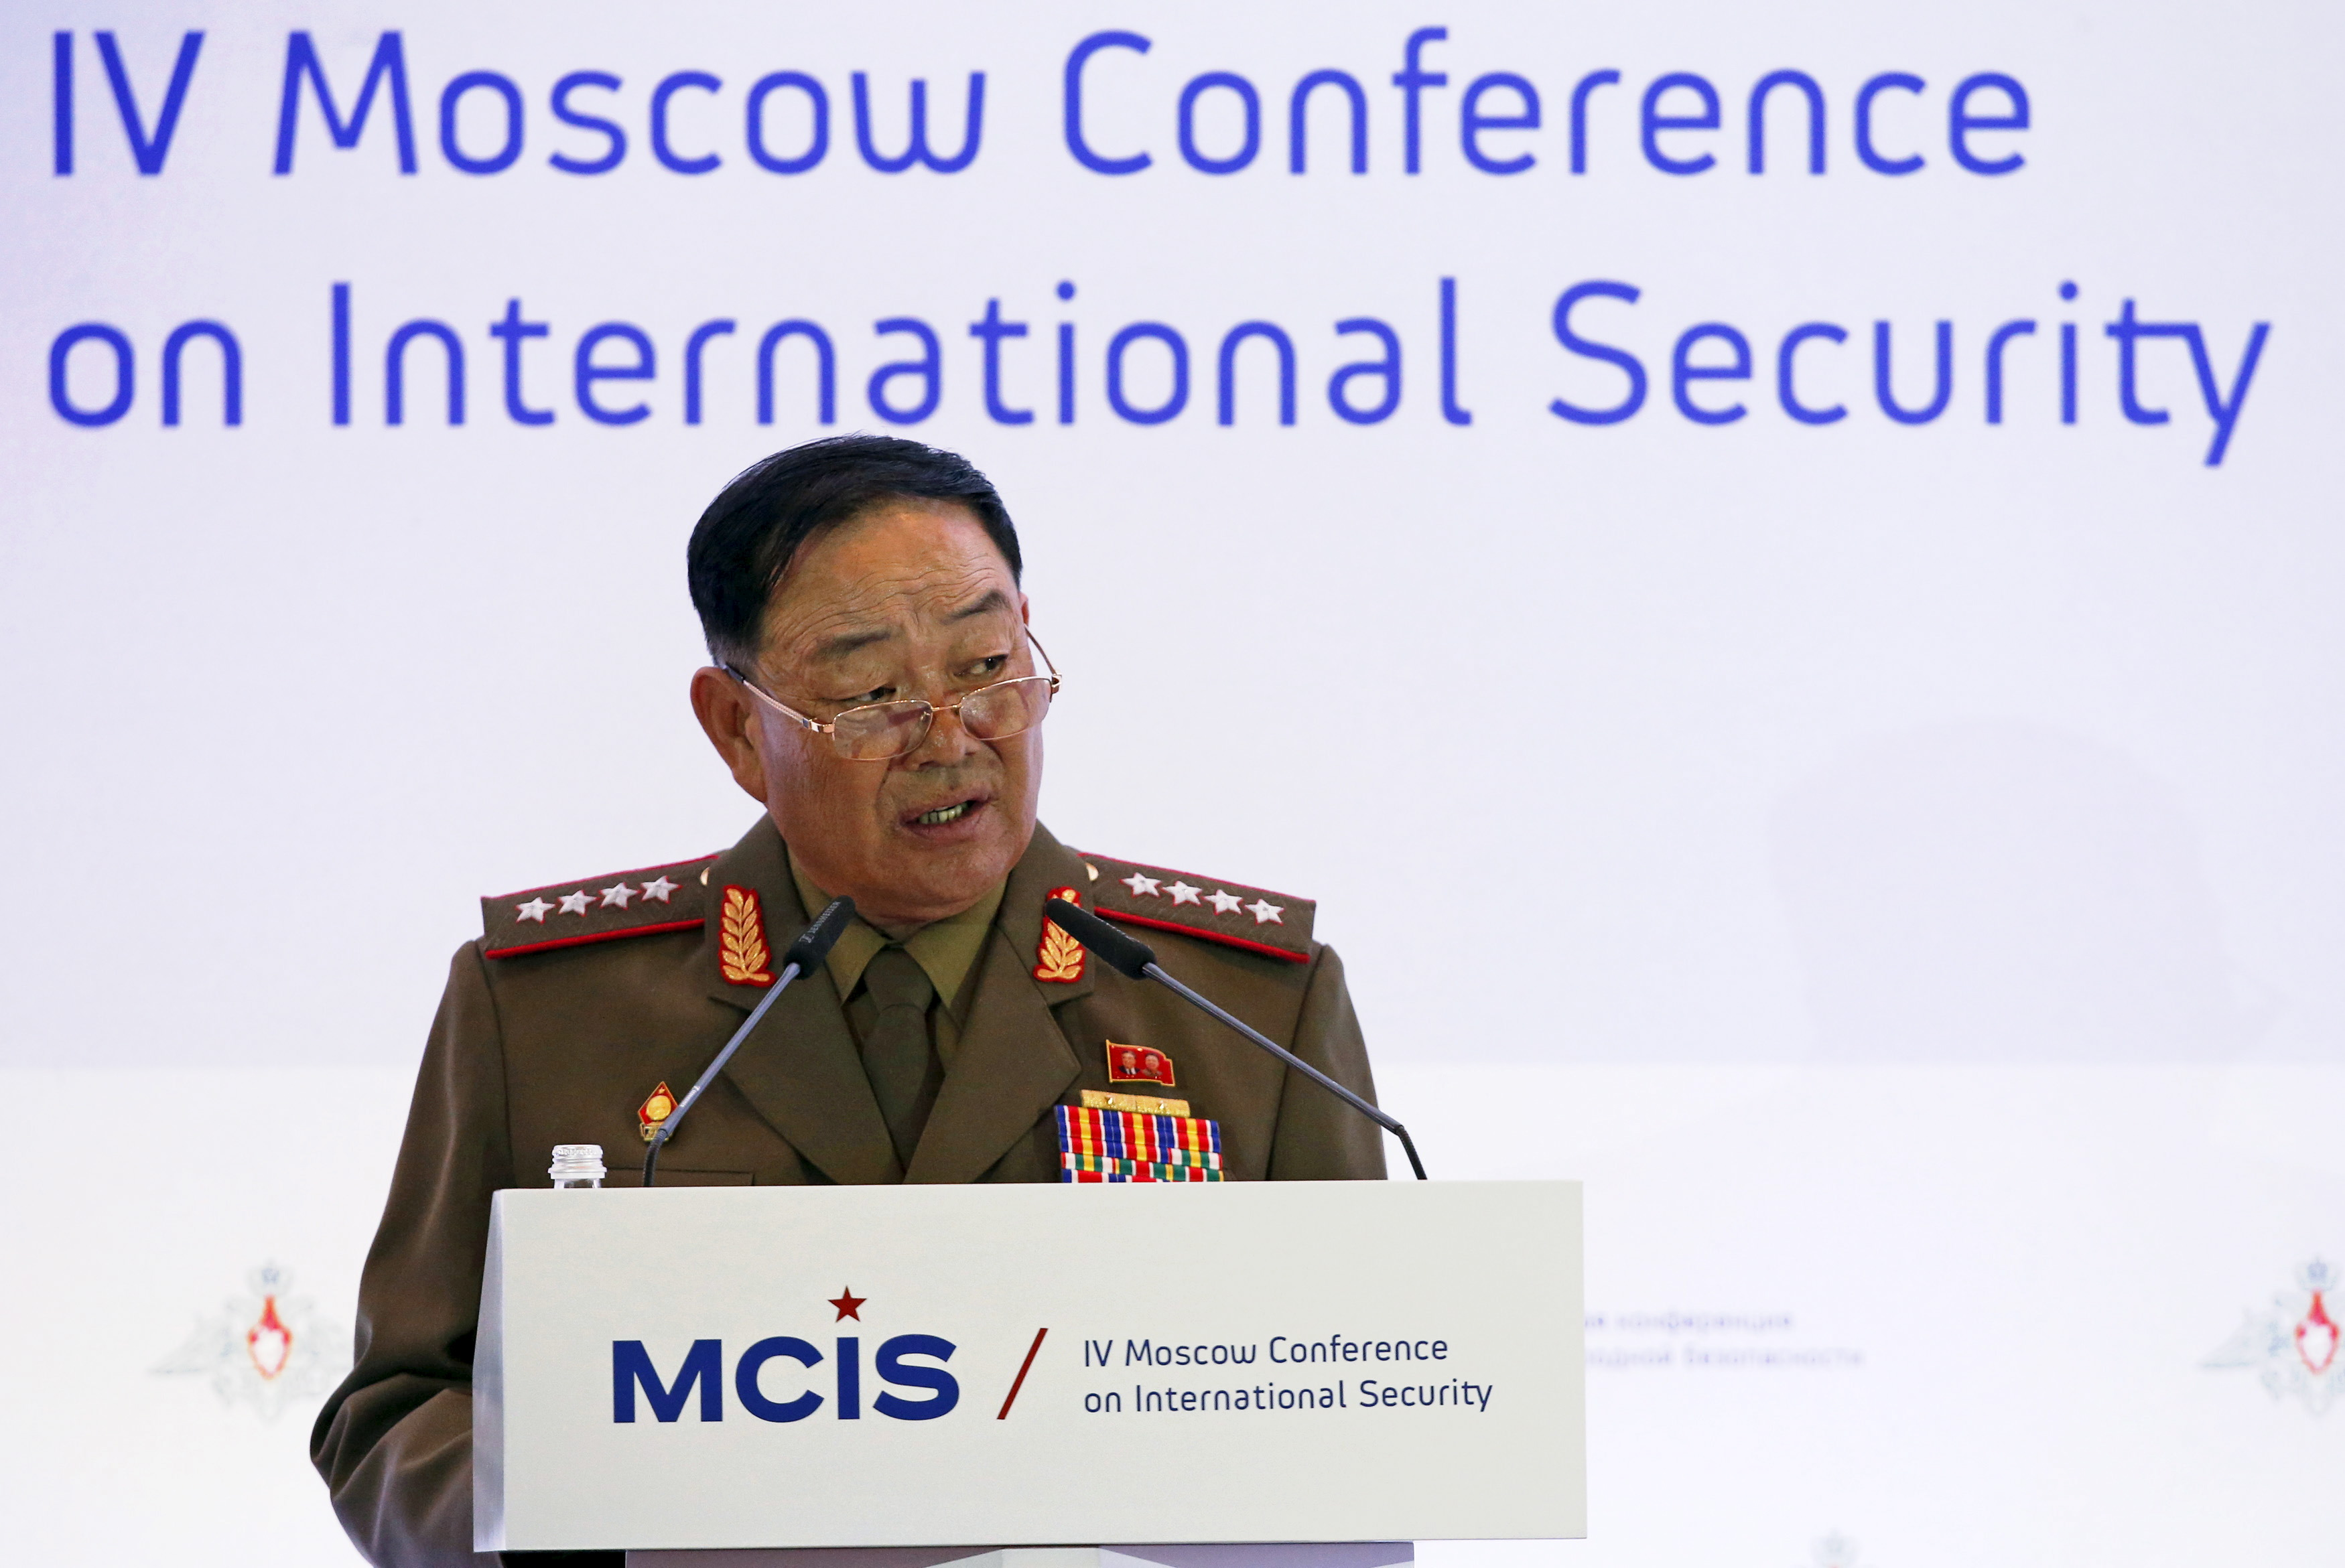 Senior North Korean military officer Hyon Yong Chol delivers a speech during the 4th Moscow Conference on International Security (MCIS) in Moscow April 16, 2015.